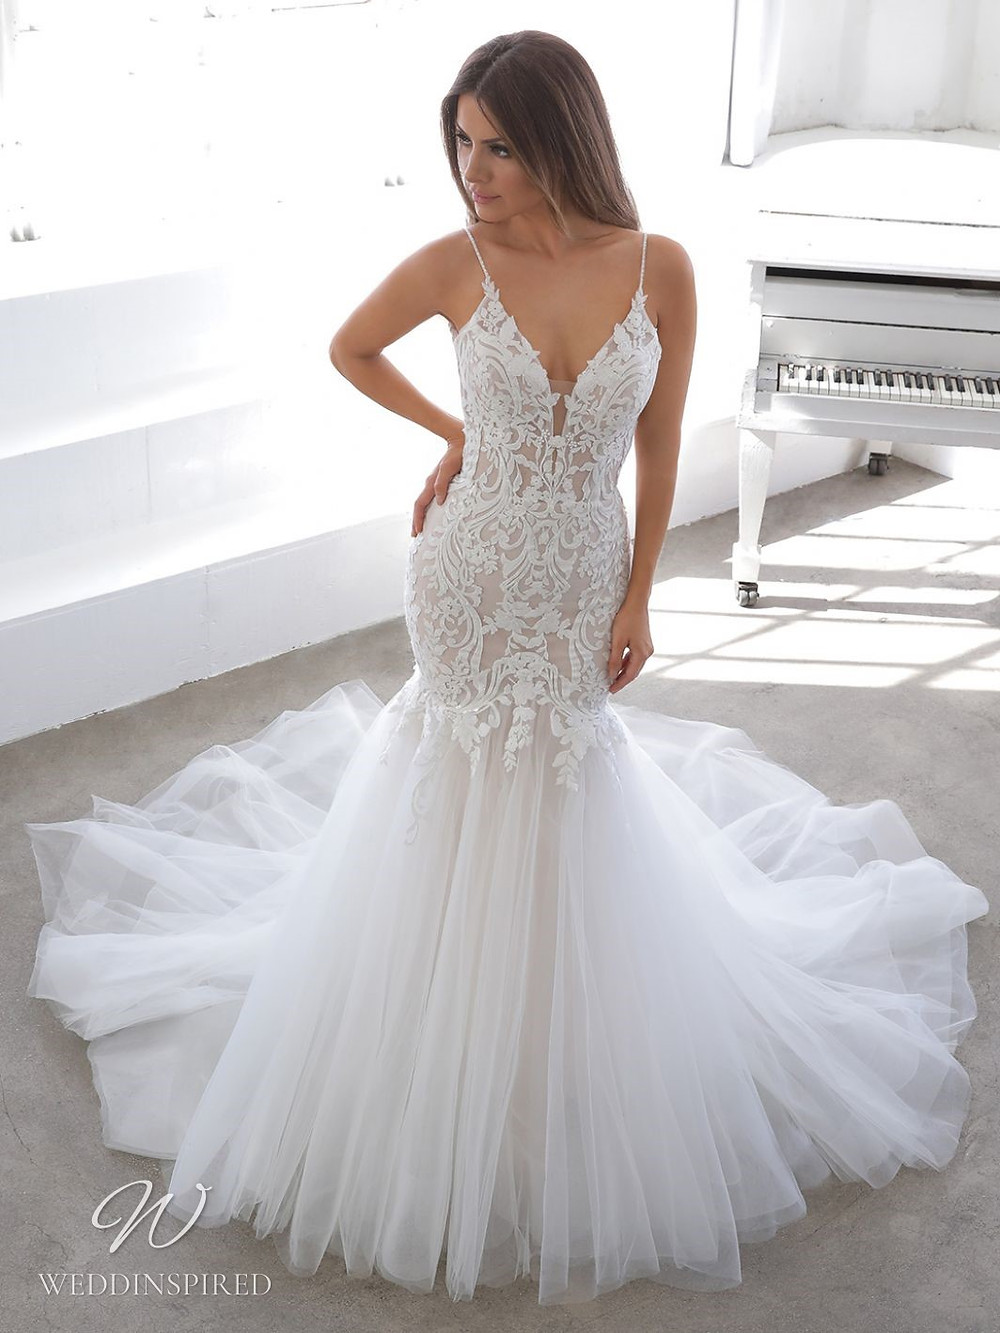 A Blue by Enzoani 2021 lace and tulle mermaid wedding dress with straps